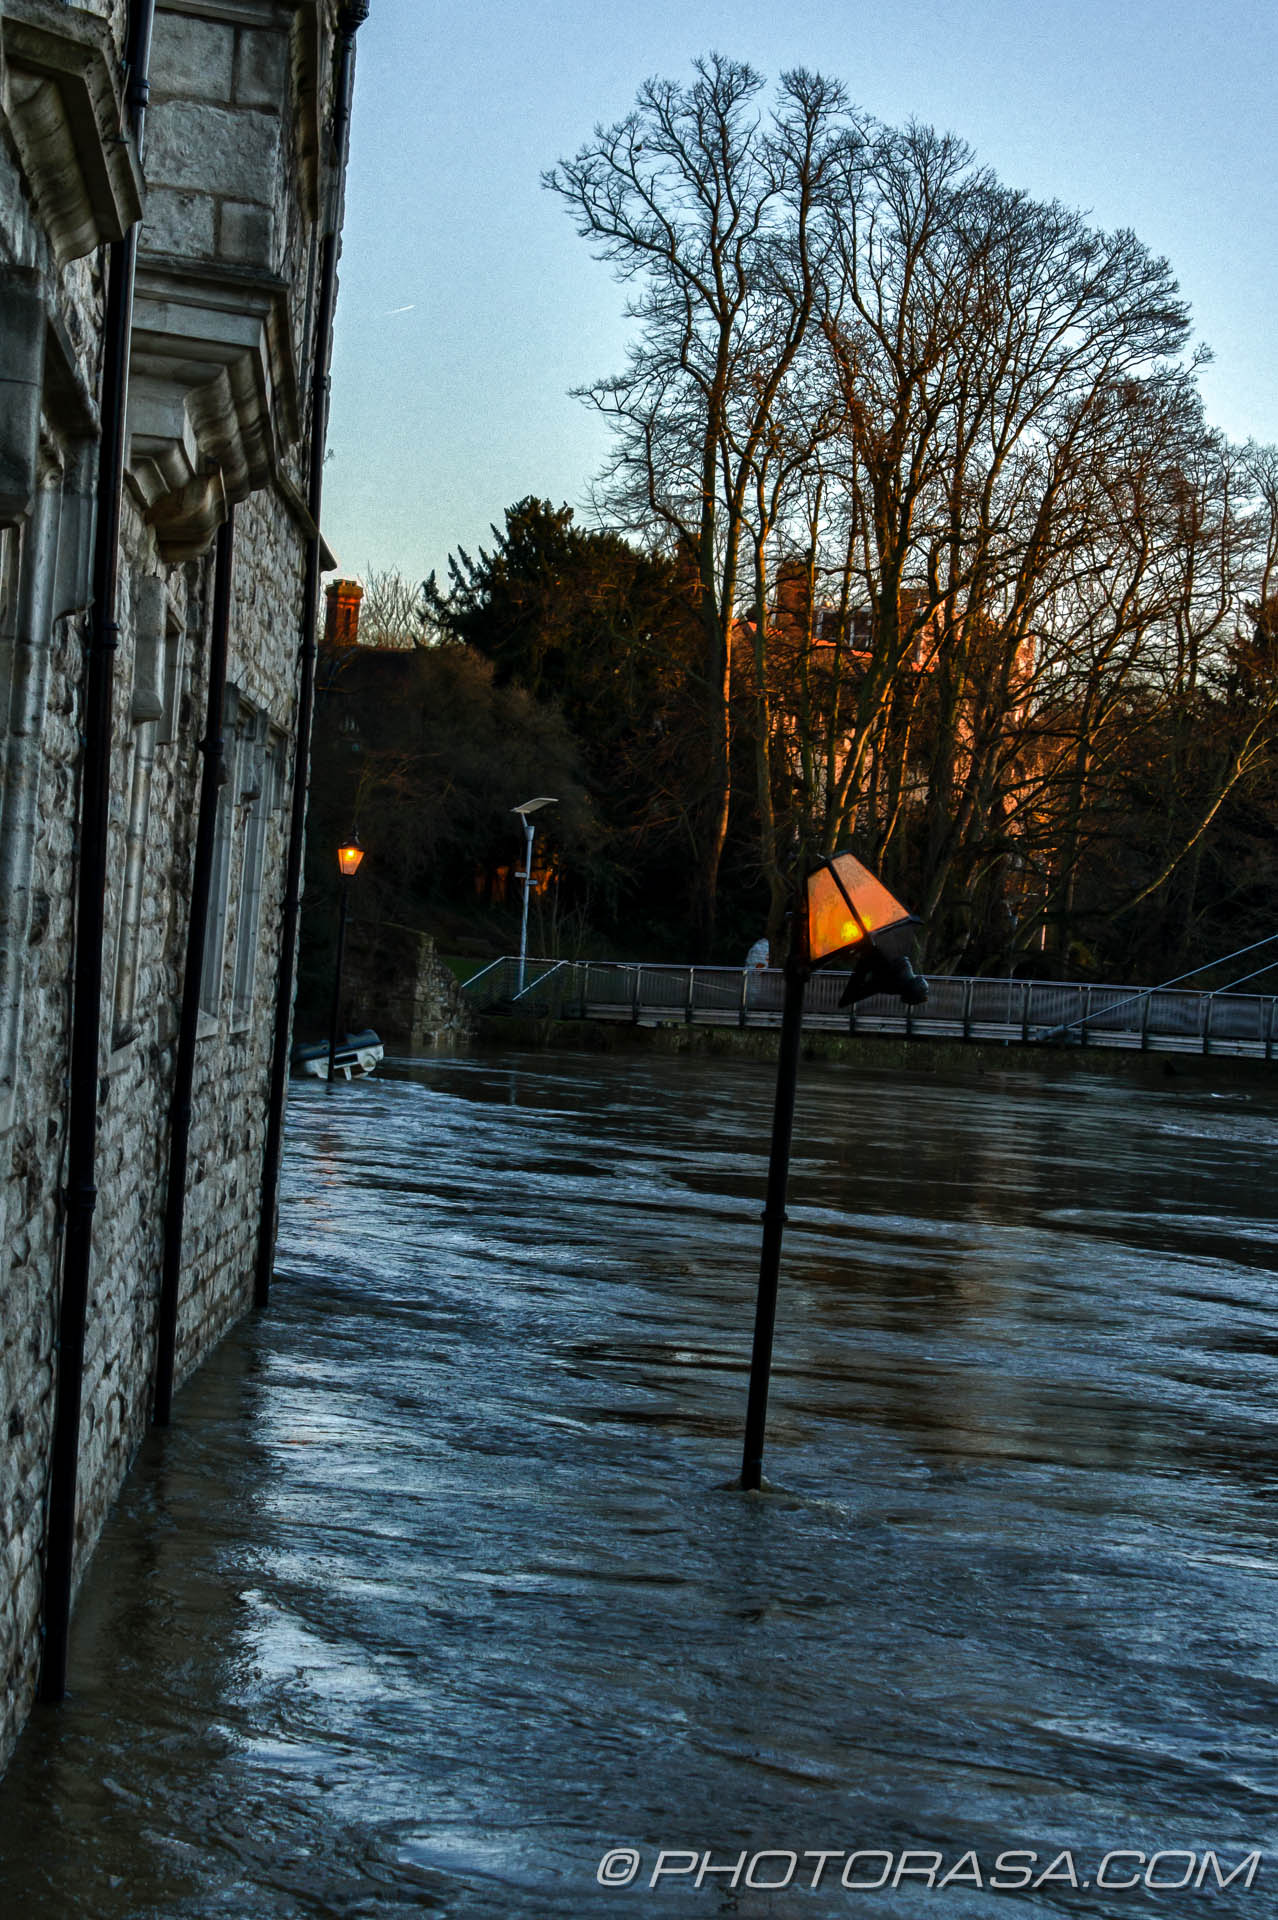 http://photorasa.com/wet-xmas-maidstone-river-medway-floods-town-centre/broken-street-lamp-still-working/